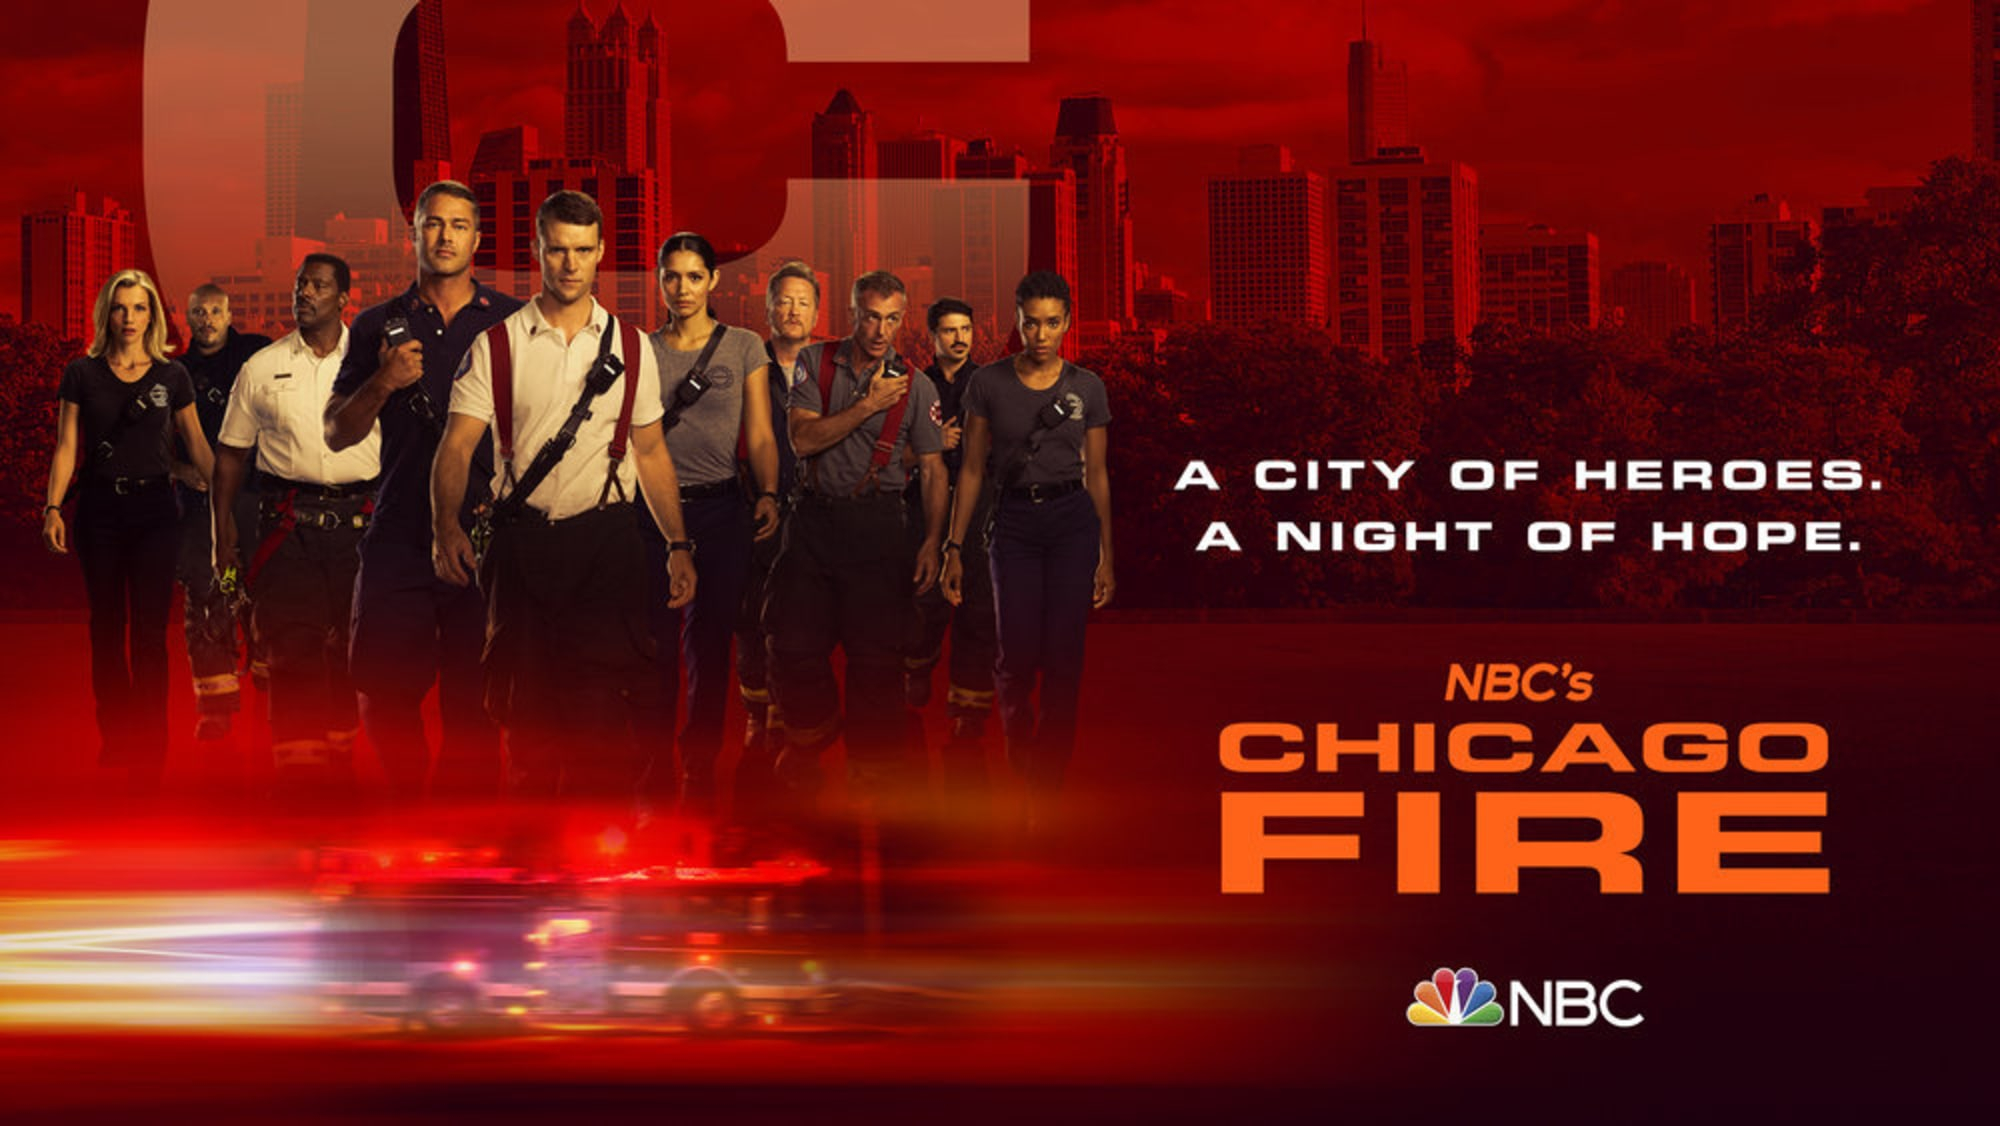 Chicago Fire Tv Schedule For January 2020: What's New And For Winter 2020 Tv Guide Premier Calendar